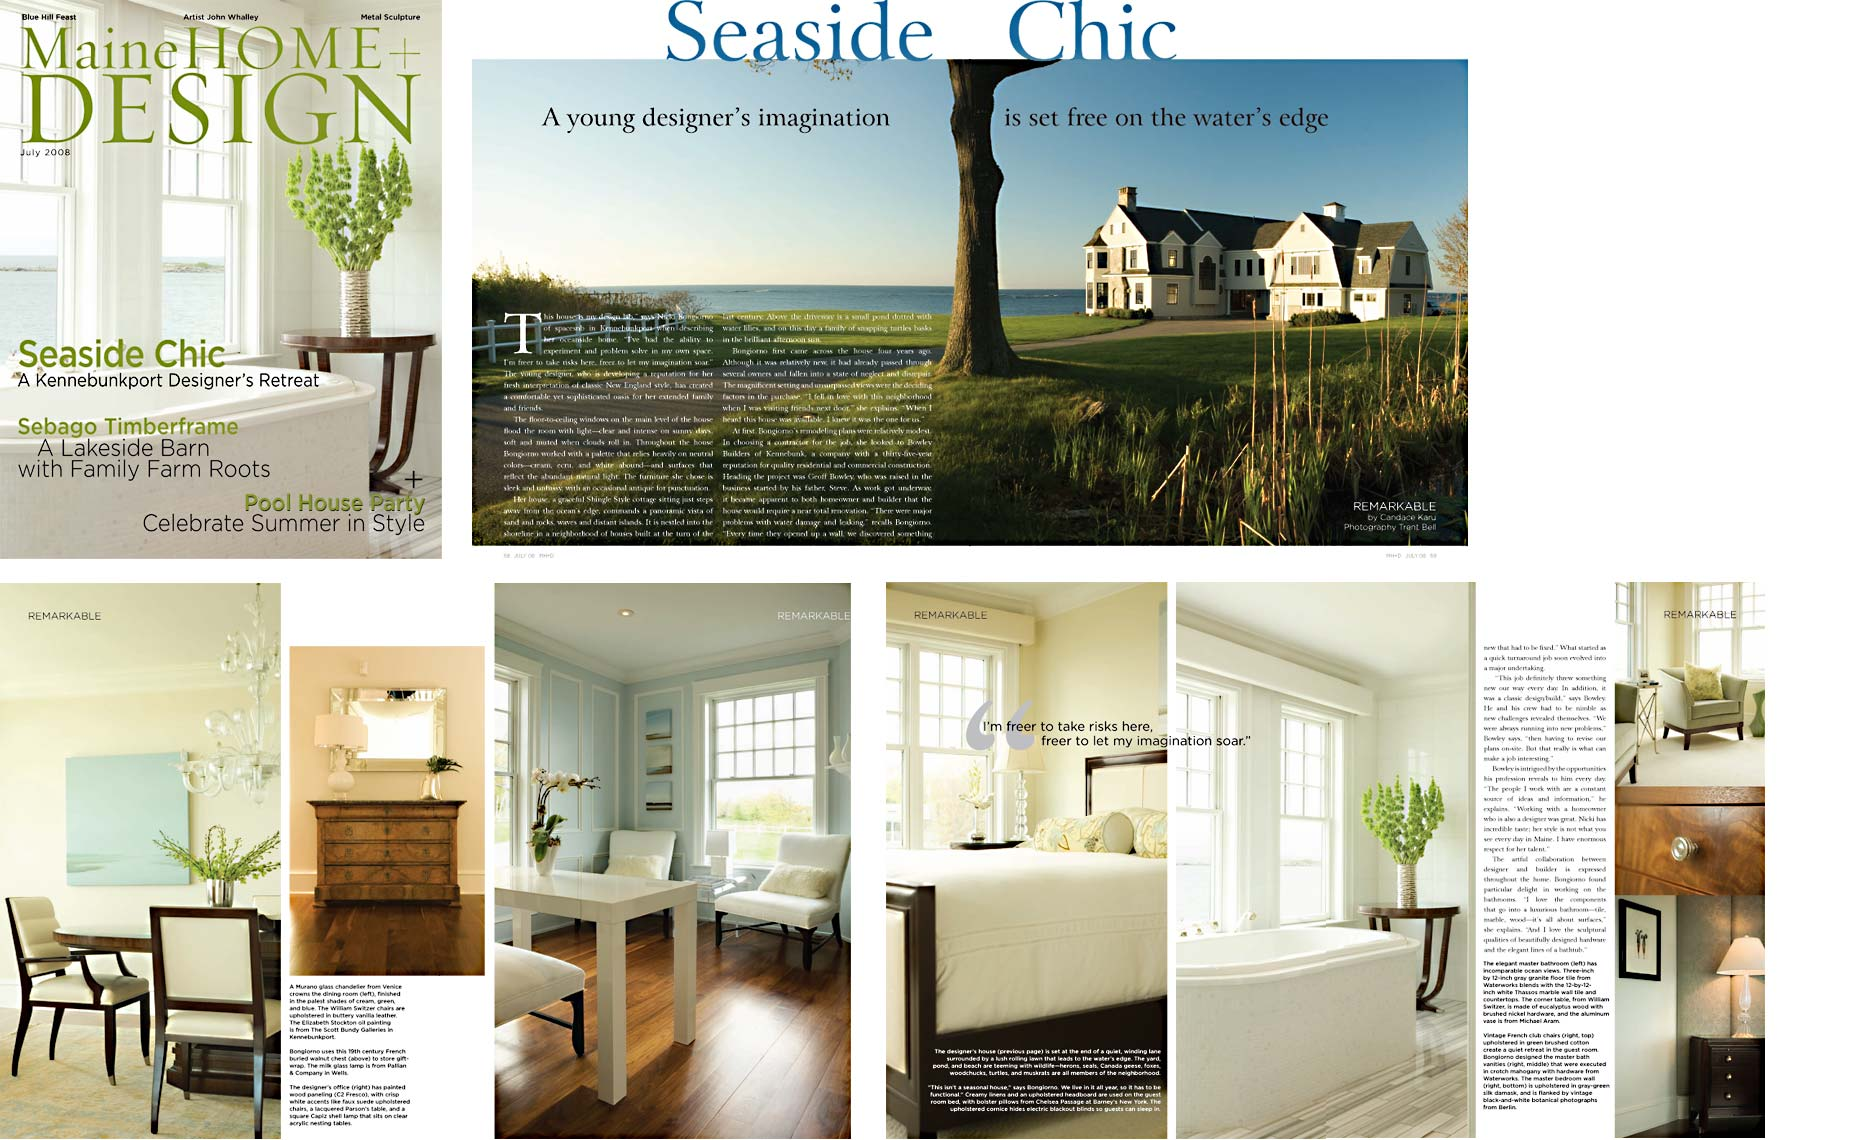 Maine Home + Design Tear Sheets on beautiful homes and design, maine jacuzzi and fireplace, luxe interiors and design, maine coastal homes, florida home and design, maine animals, maine agriculture, california home and design, maine coast kitchen design, maine waterfront mansion, charleston home and design, new england home and design, decorating and design, maine houses, colorful maine cottage design, maine interior design, maine log homes,